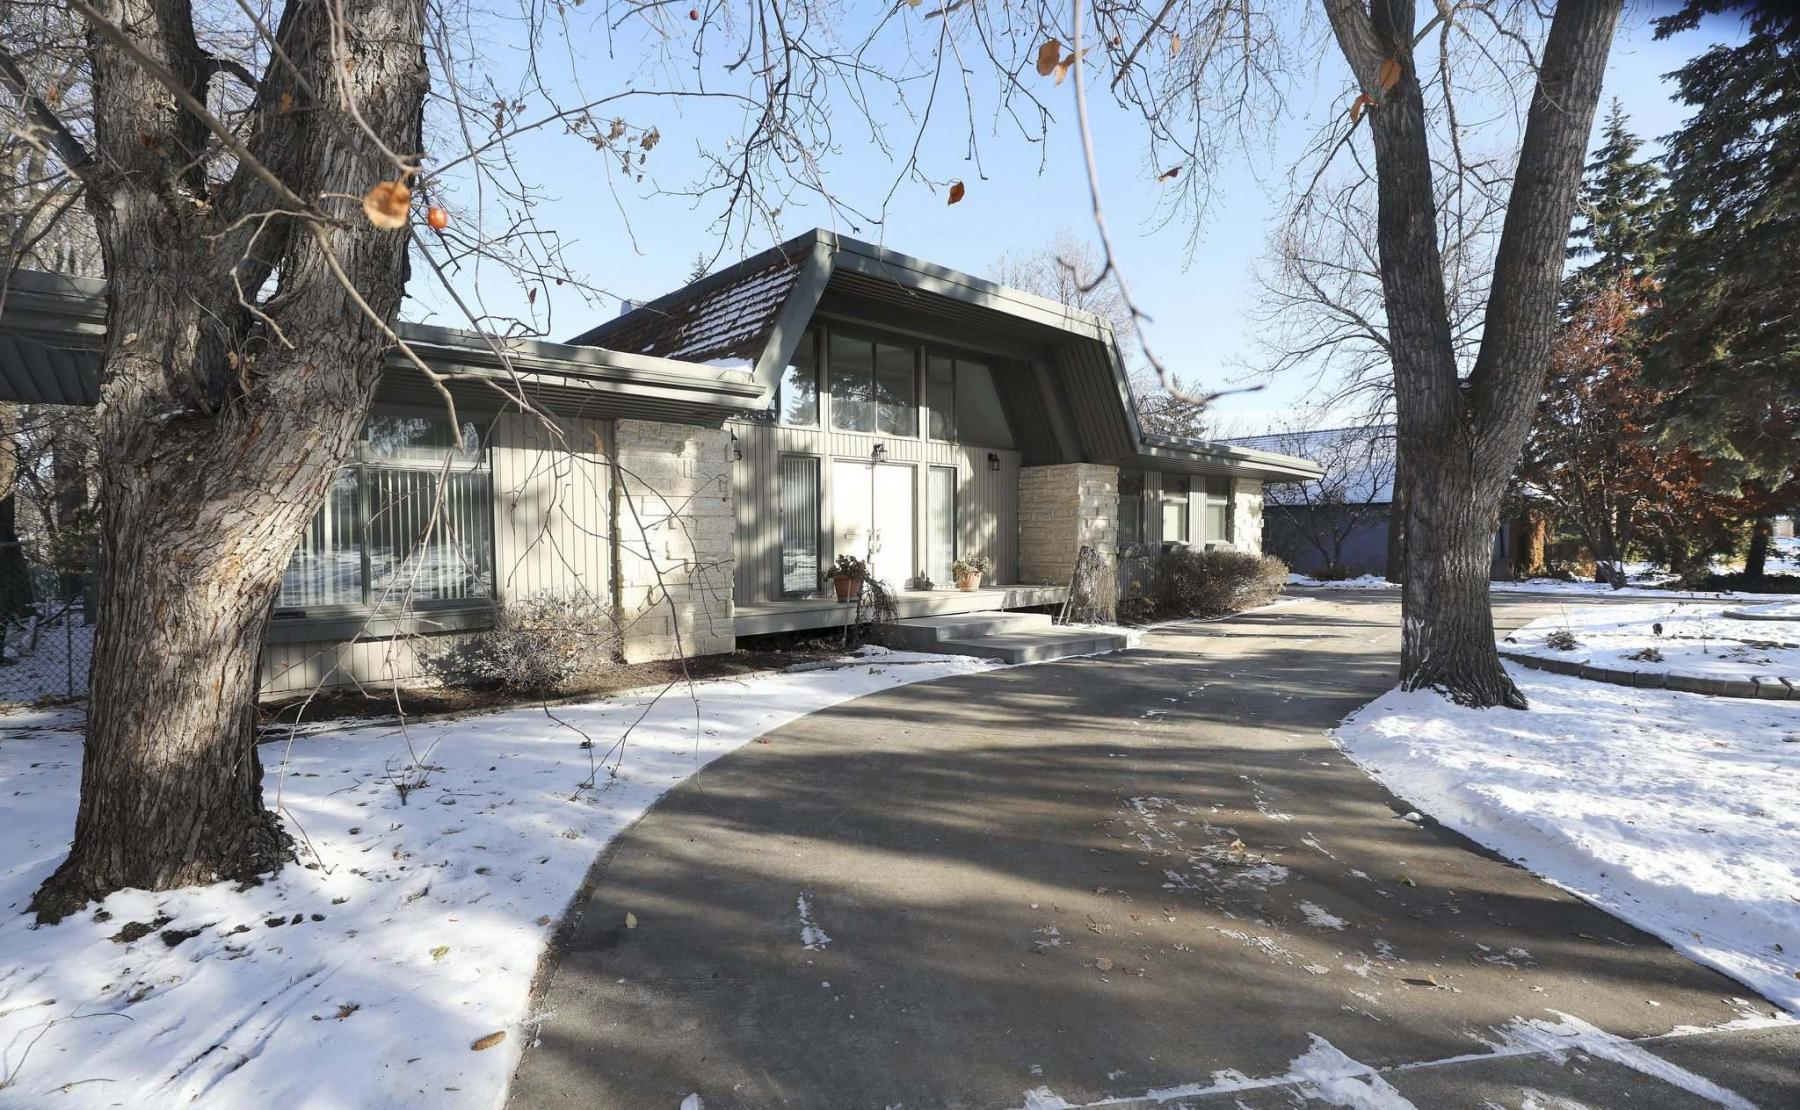 <p>PHOTOS By RUTH BONNEVILLE / WINNIPEG FREE PRESS</p><p>A circular driveway greets visitors to the deceptively large 1971-built home on Southboine Drive.</p>